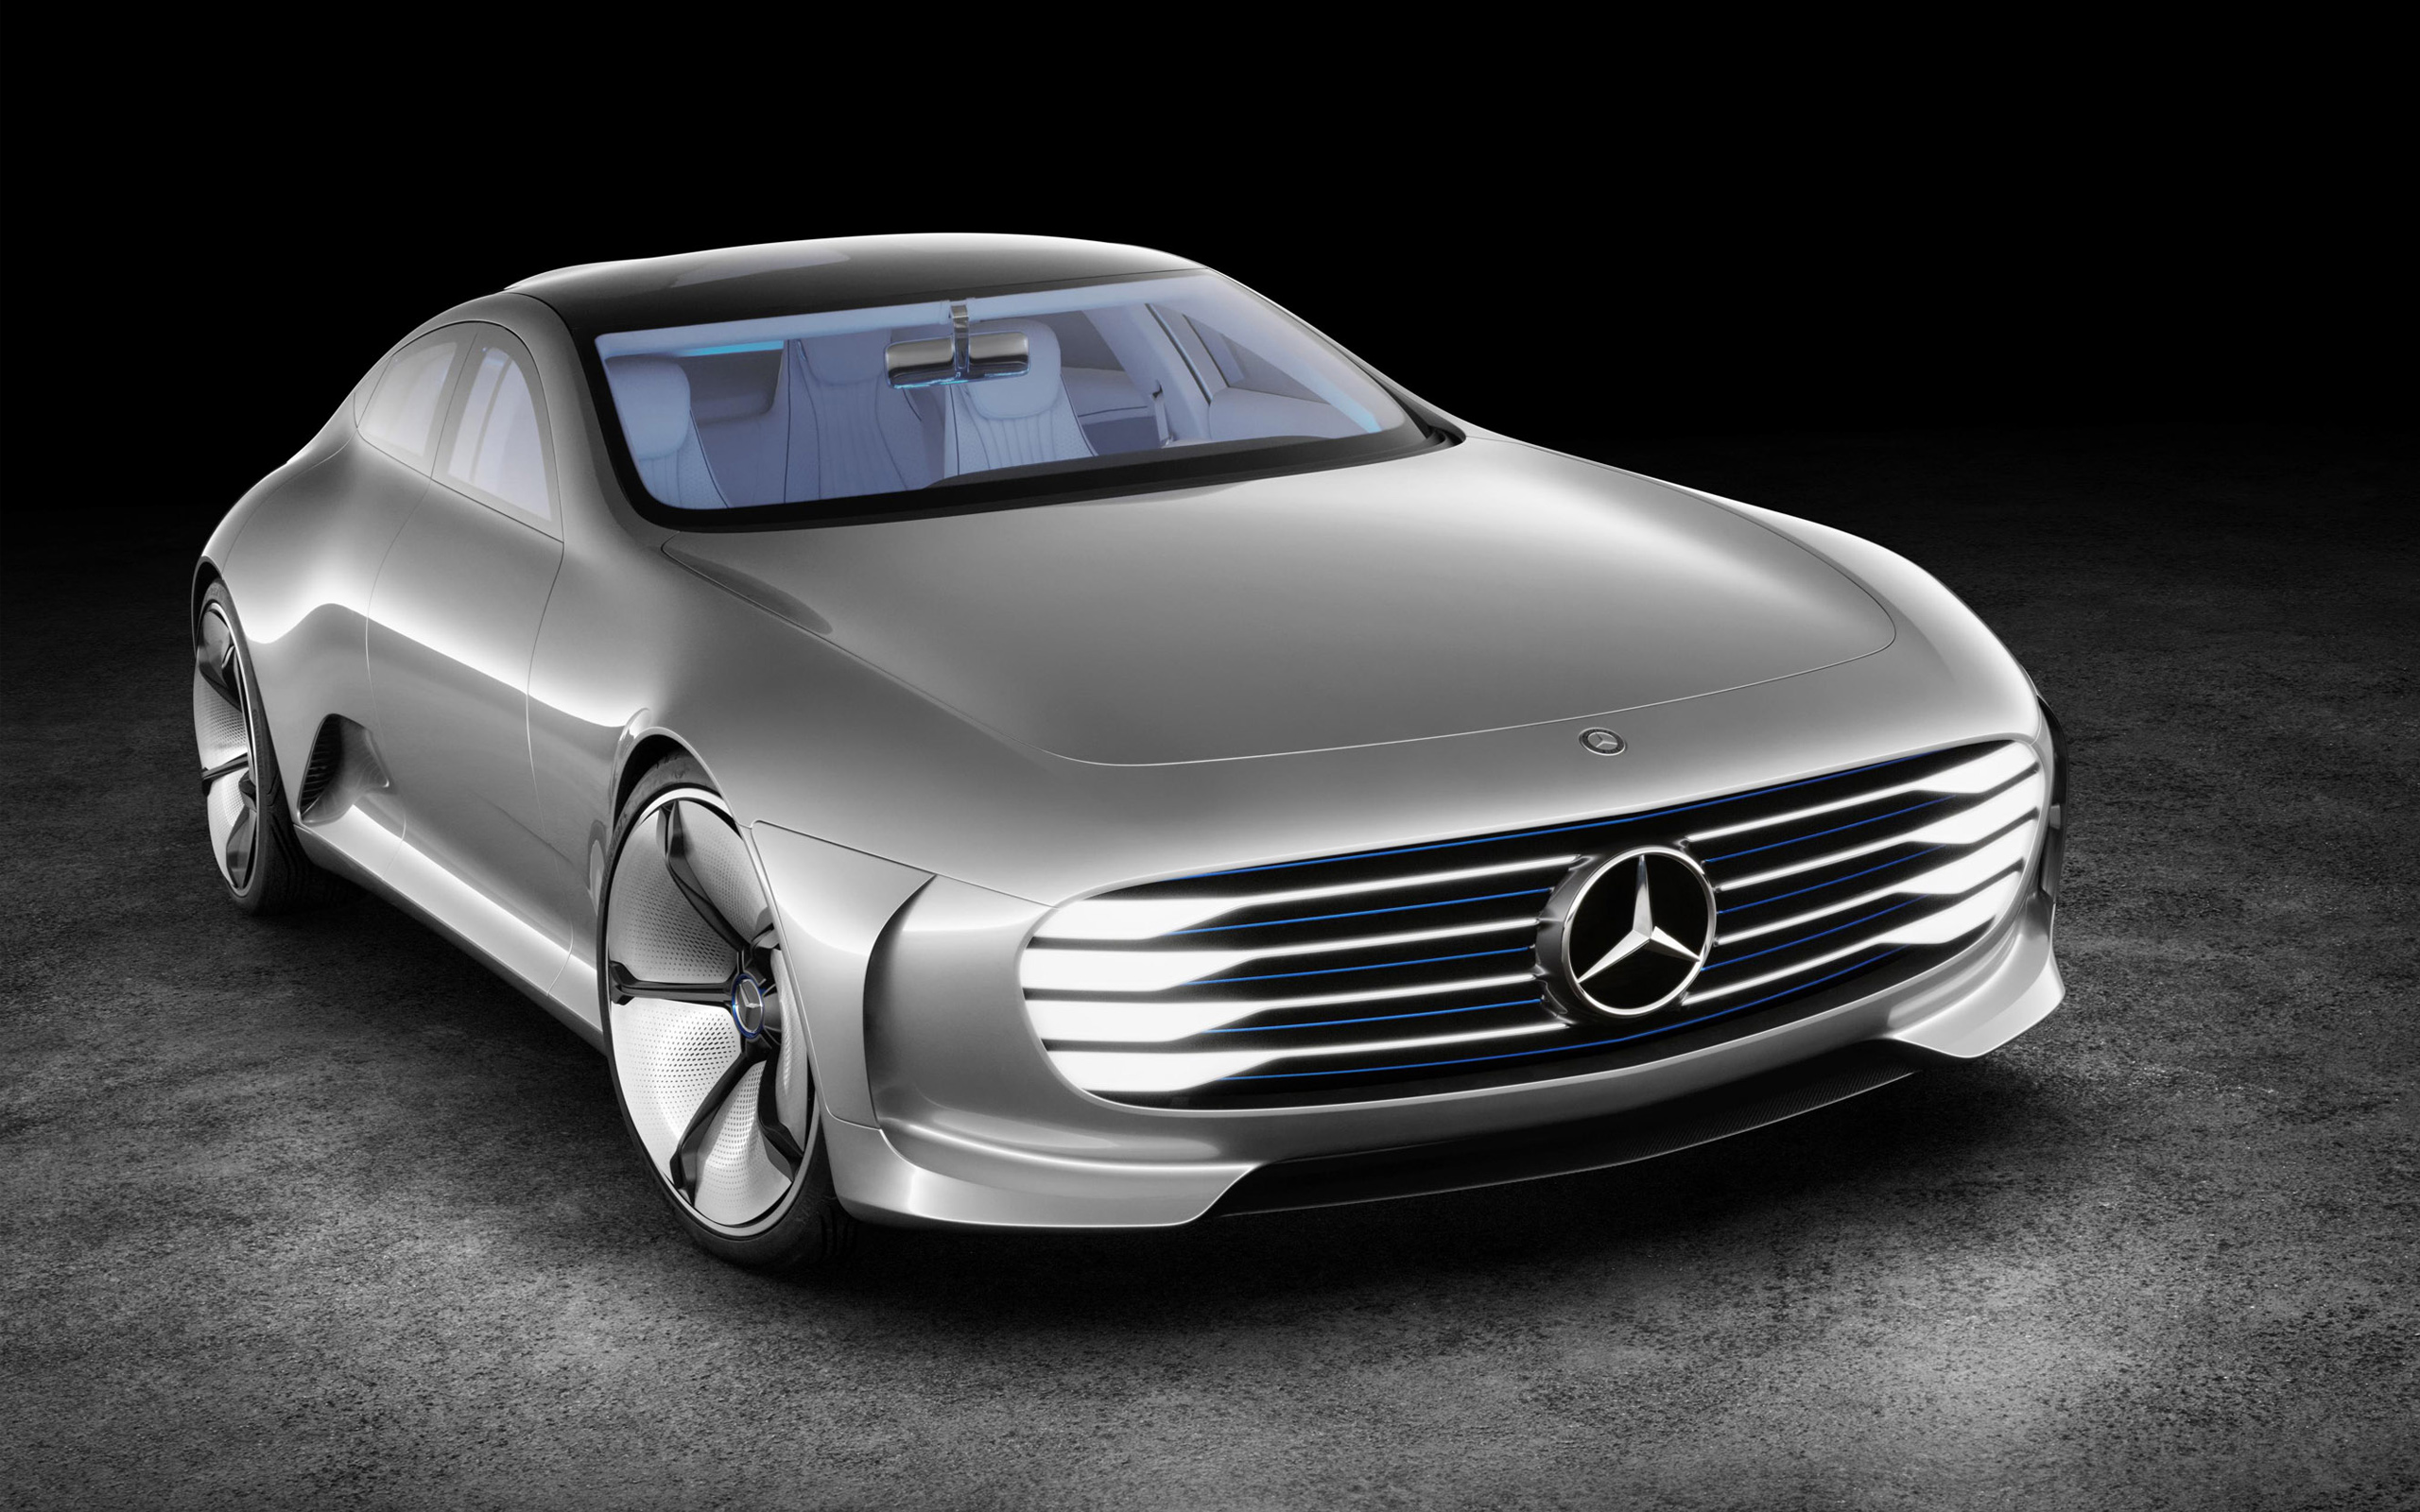 2016 mercedes benz concept iaa 2 wallpaper hd car wallpapers for Mercedes benz cars images